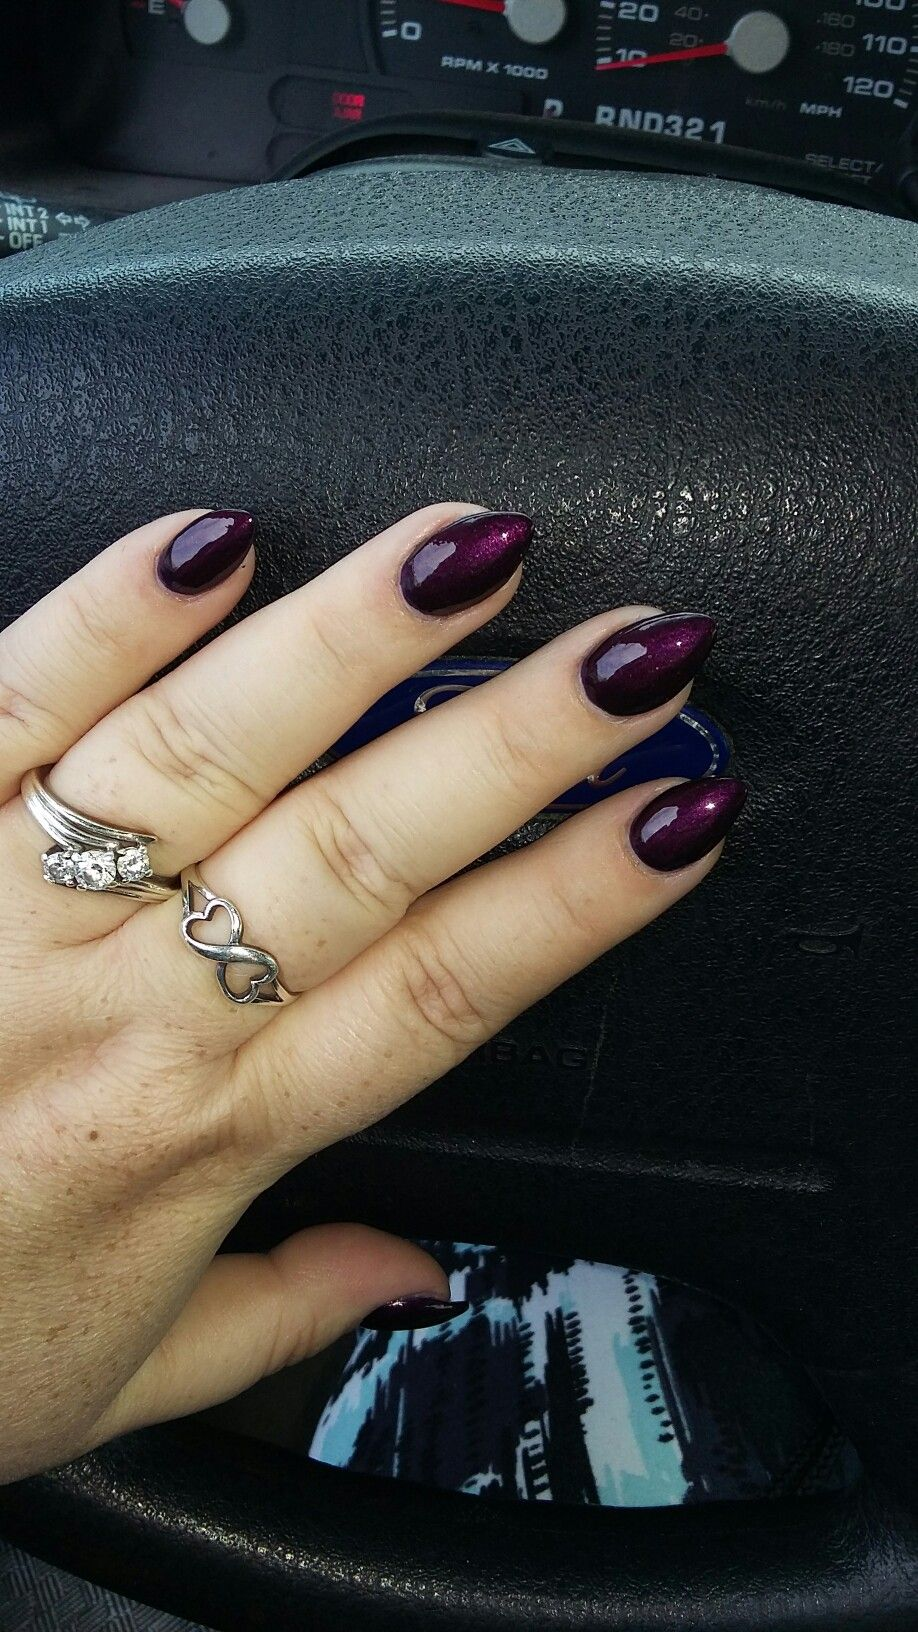 Teardrop nails Every time I get a new set of acrylic nails, I end up ...